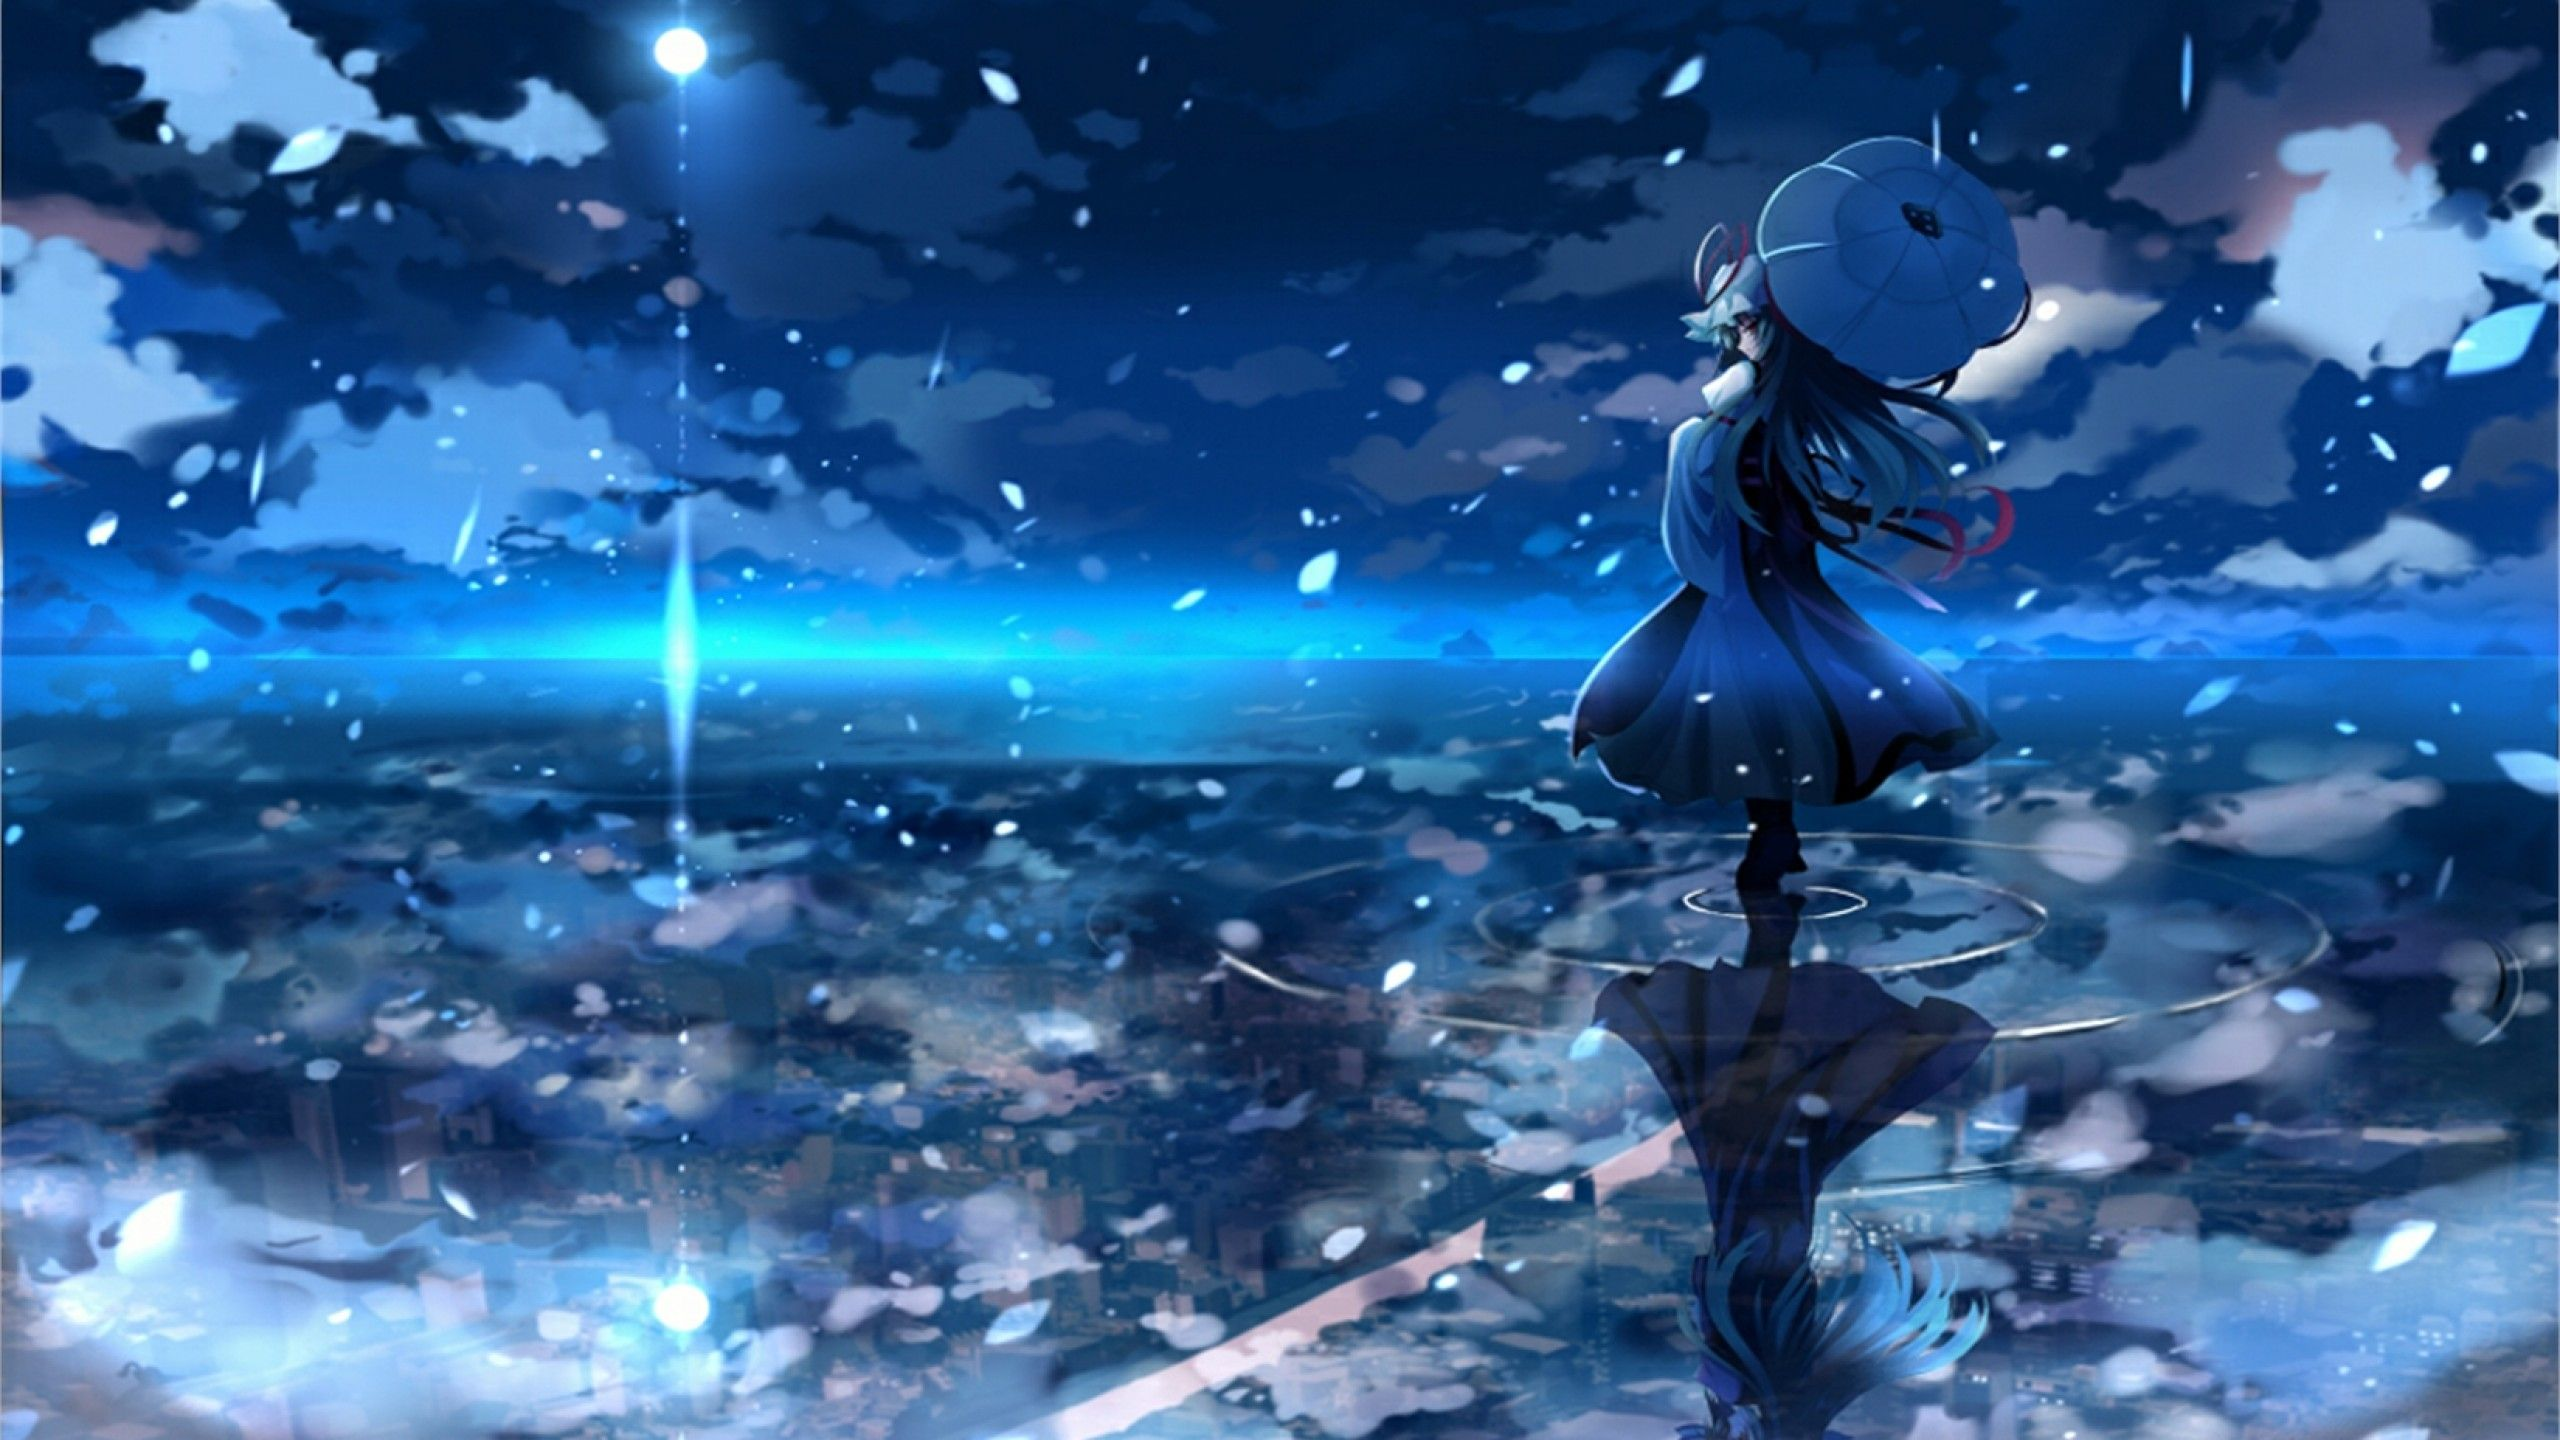 City Overlook With Images Anime Scenery Anime Scenery